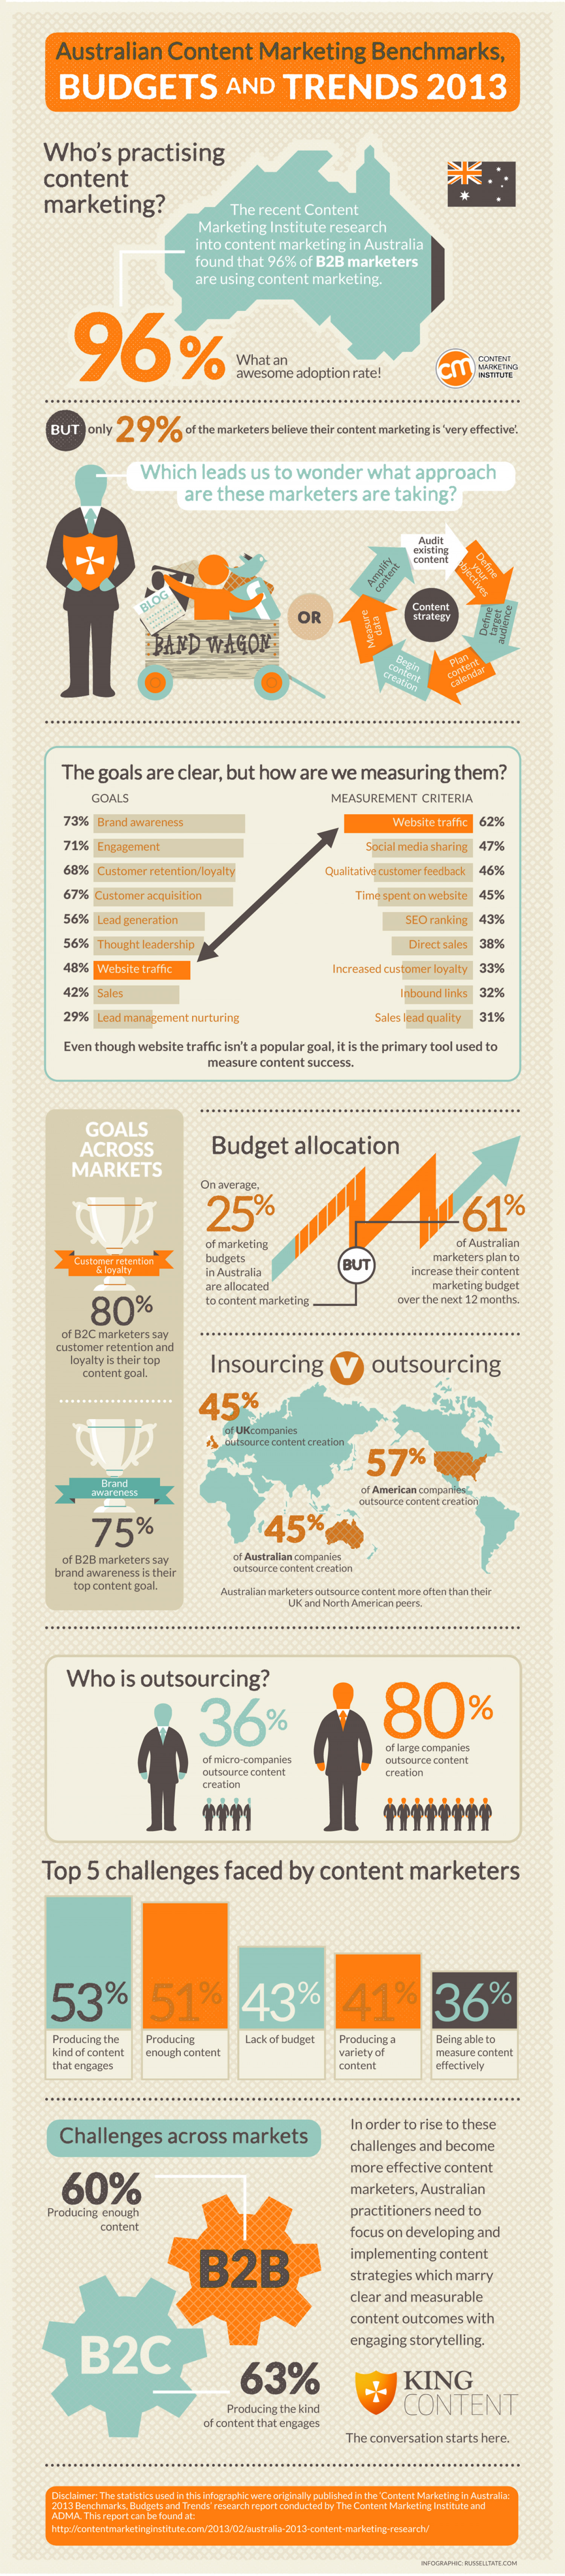 Content Marketing Trends Infographic